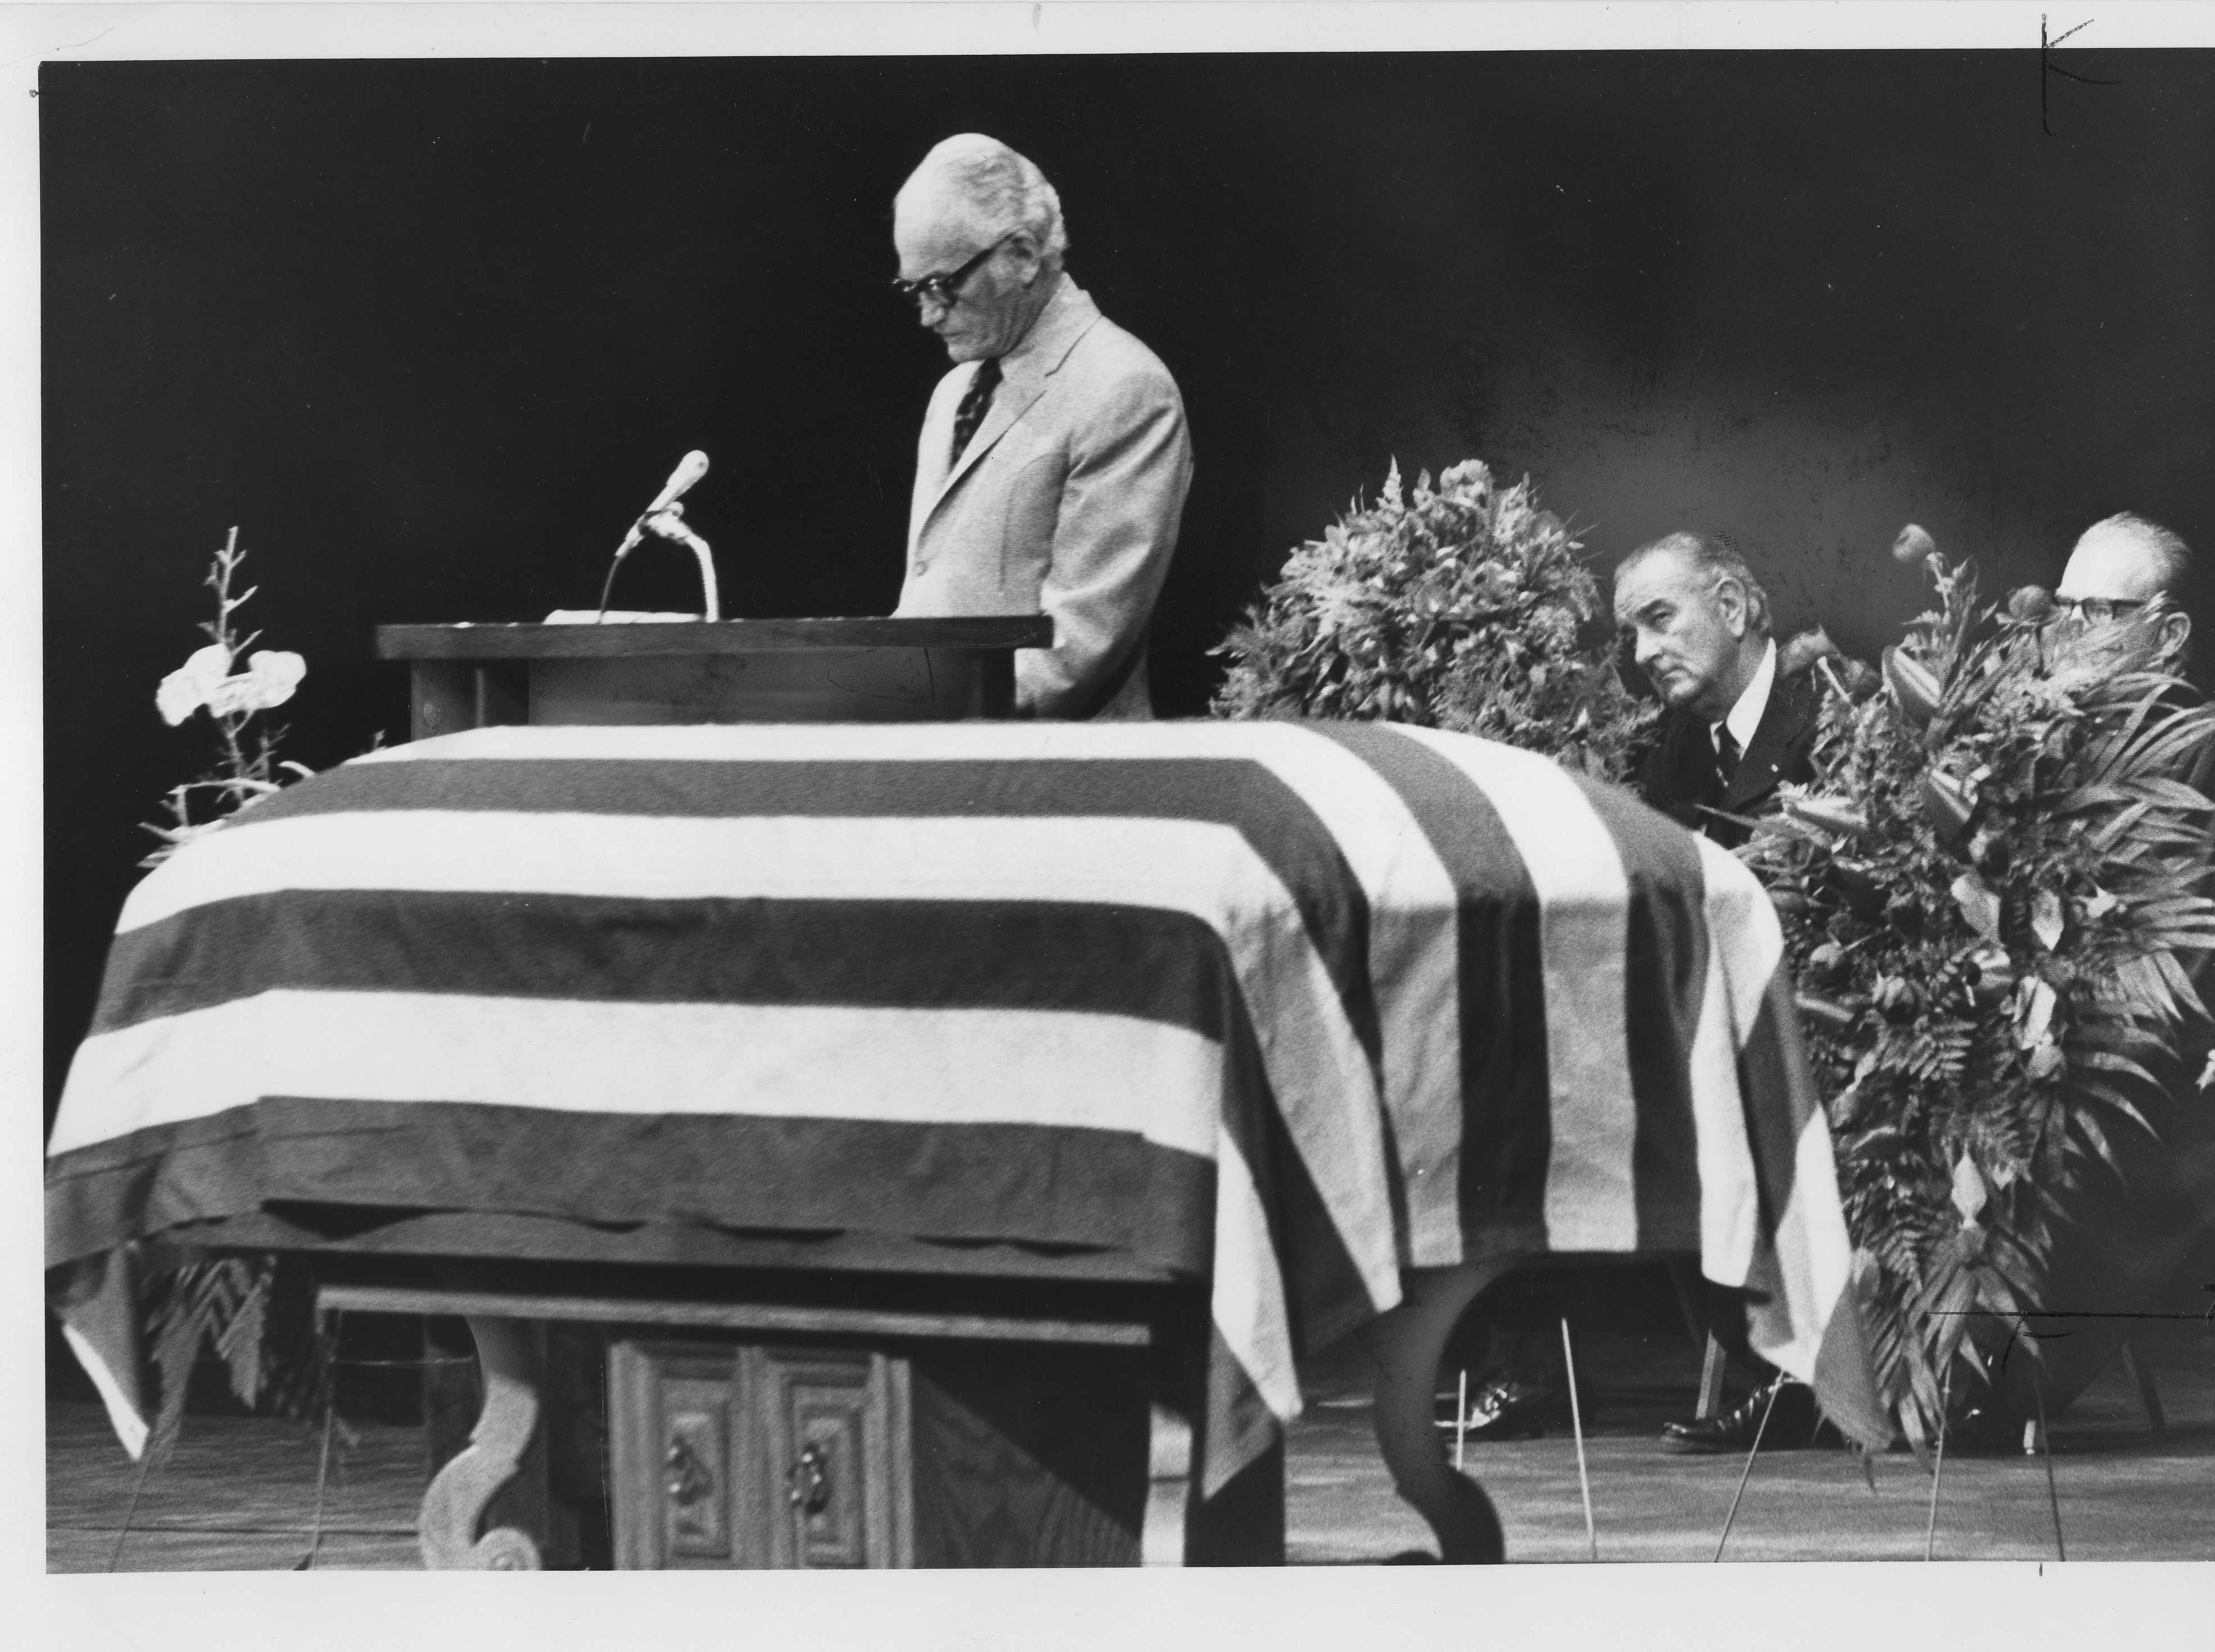 U.S. Sen. Barry Goldwater attends the funeral for former U.S. Sen. Carl Hayden in 1972, as former President Lyndon Johnson looks on.